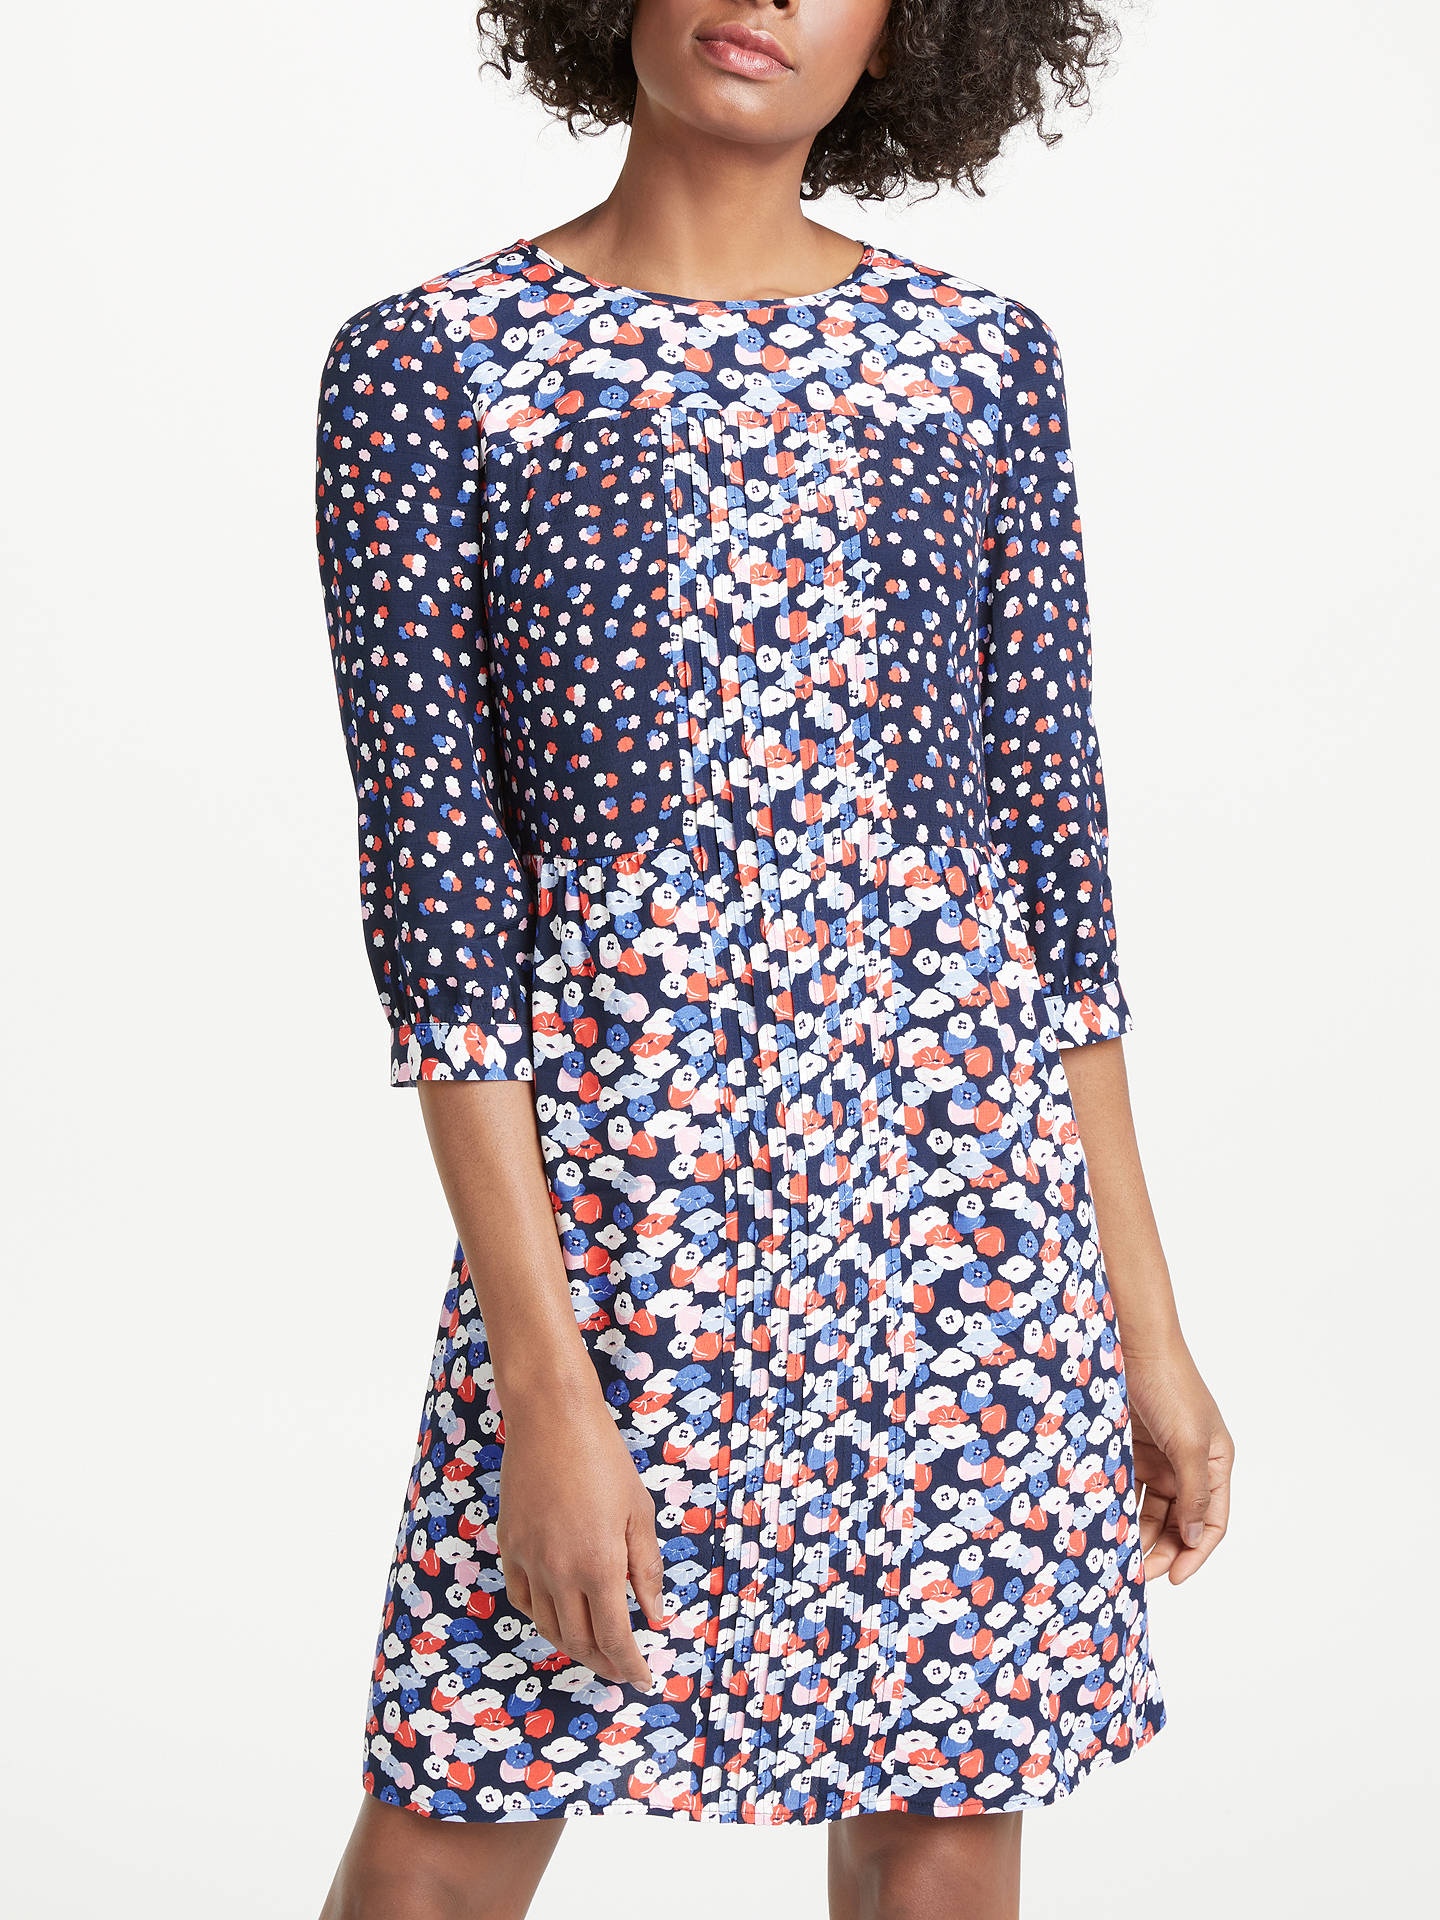 ca53d996edf4 Buy Boden Hotchpotch Poppy Meadow Pintuck Dress, Navy/Multi, 8 Online at  johnlewis ...